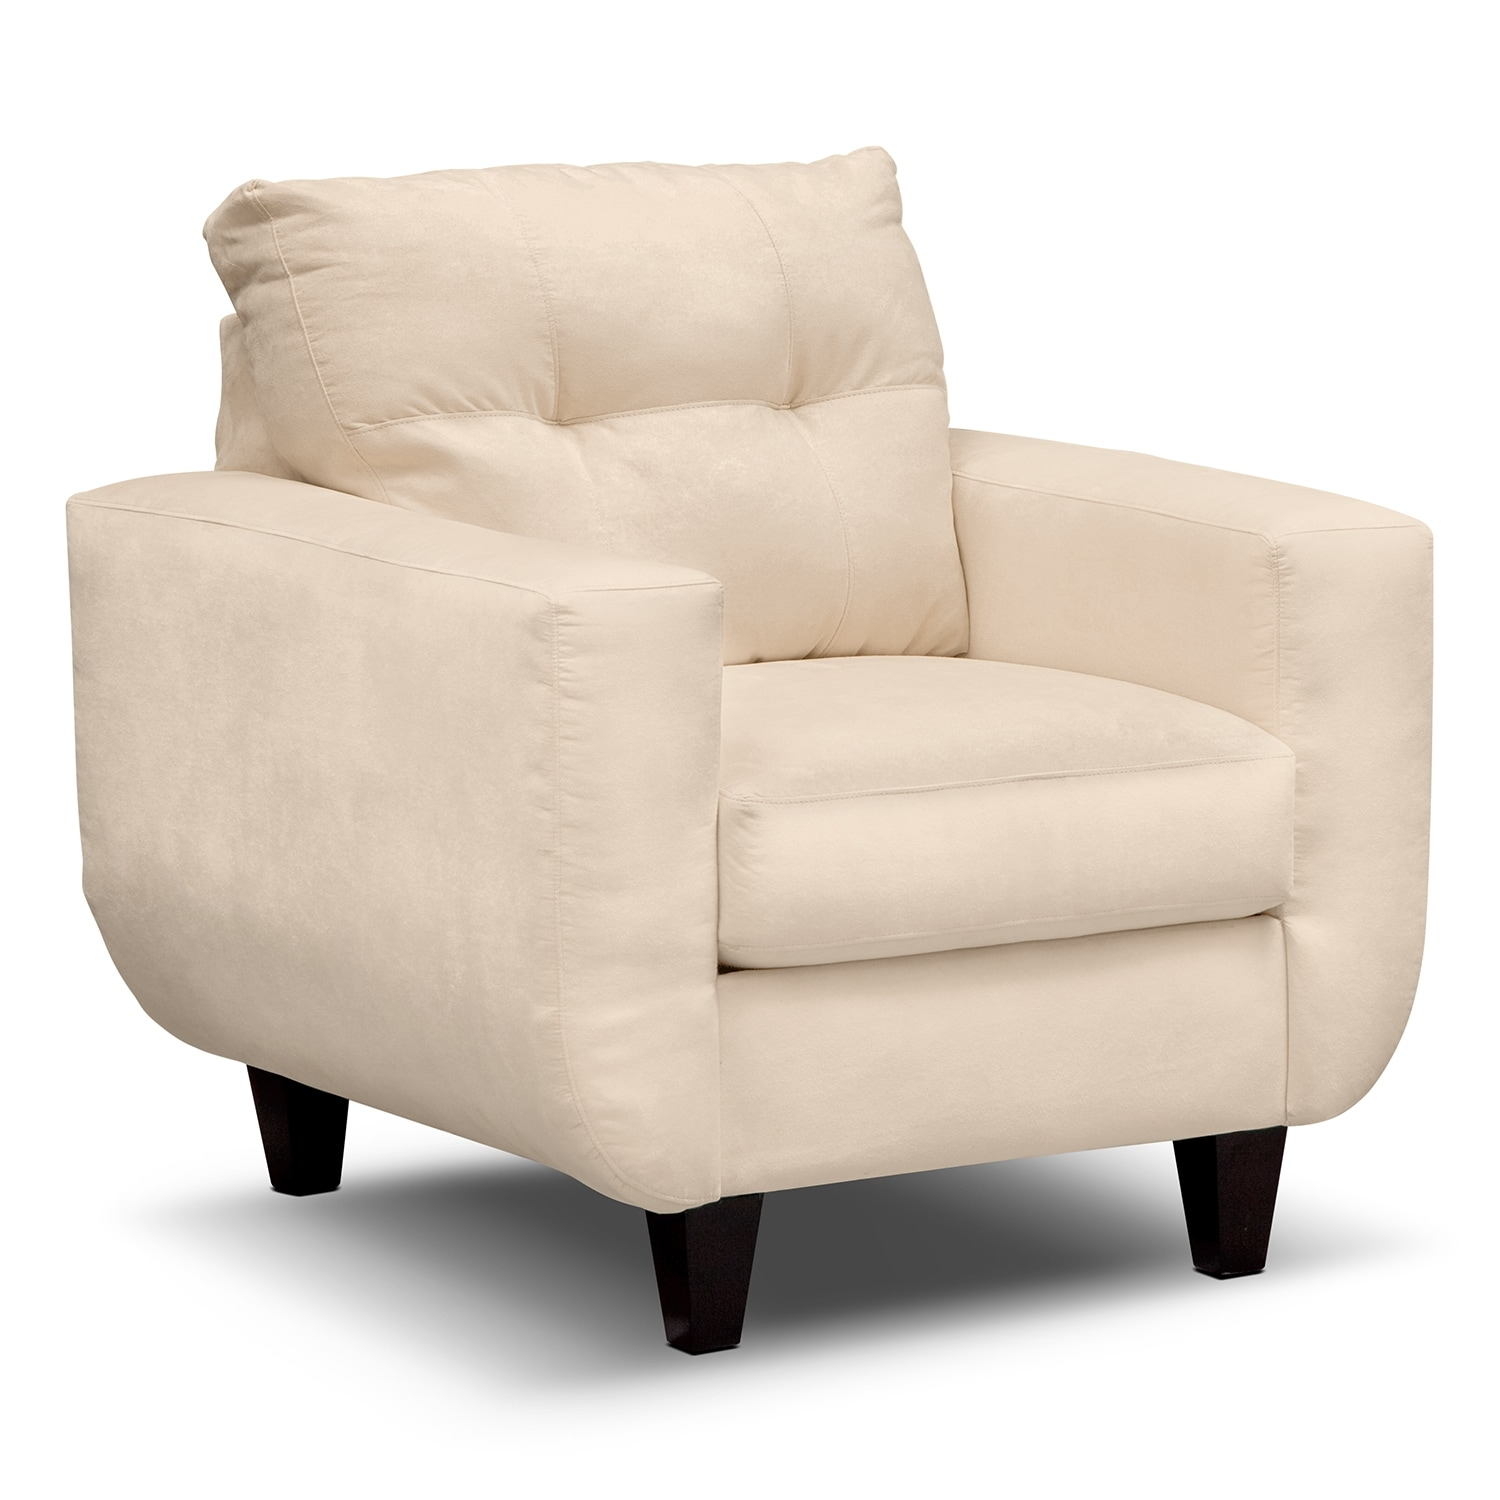 West Village Chair - Cream